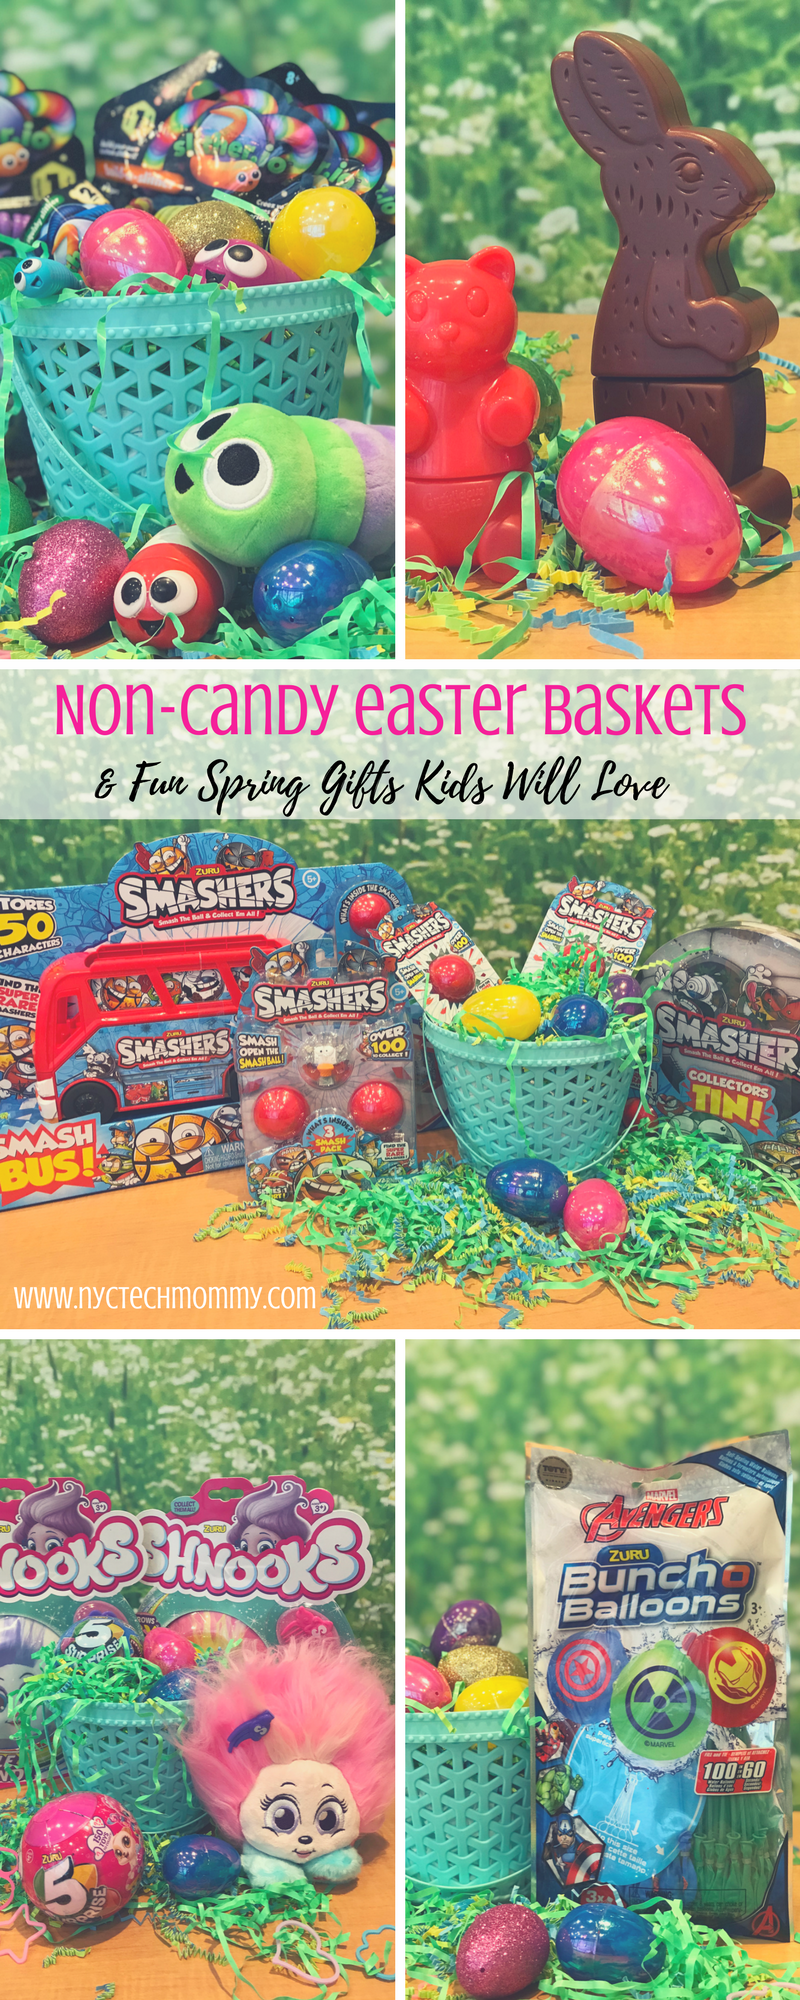 Non candy easter baskets and fun spring gifts kids will love dont you think your kids might like these non candy easter baskets and fun spring gifts too negle Choice Image